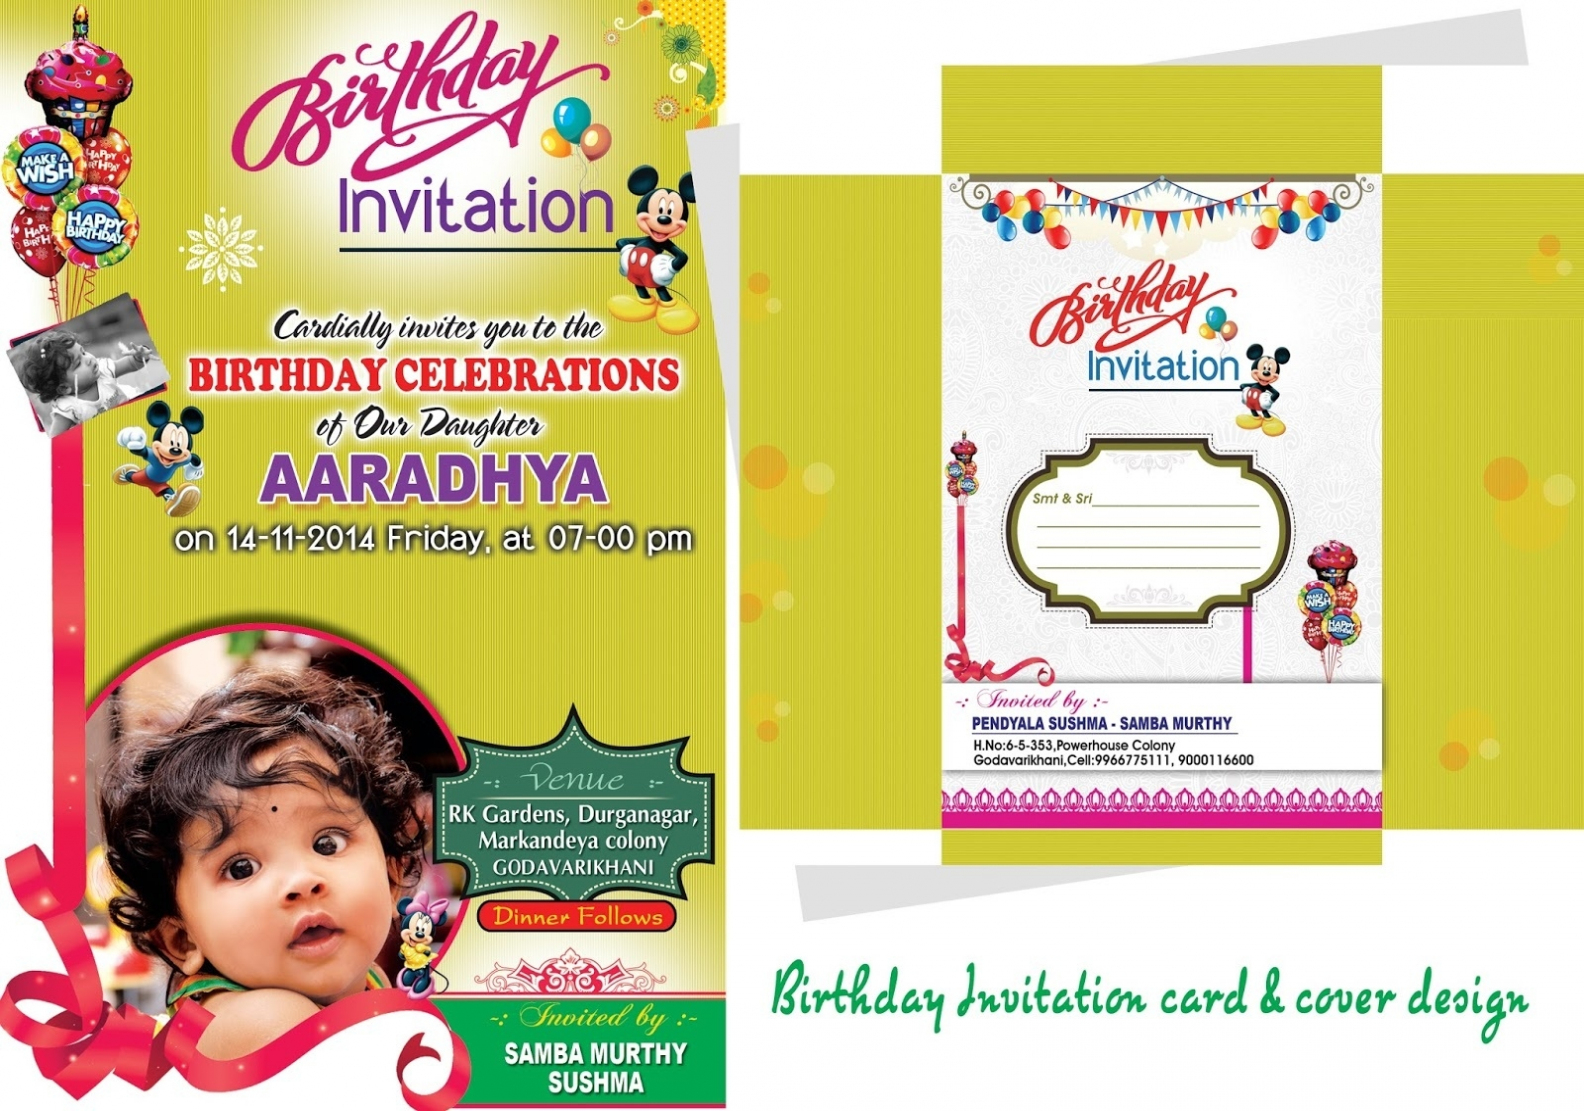 happy birthday invitation card design ; birthday-invitation-card-design-template-free-download-templates-free-birthday-invitation-cards-download